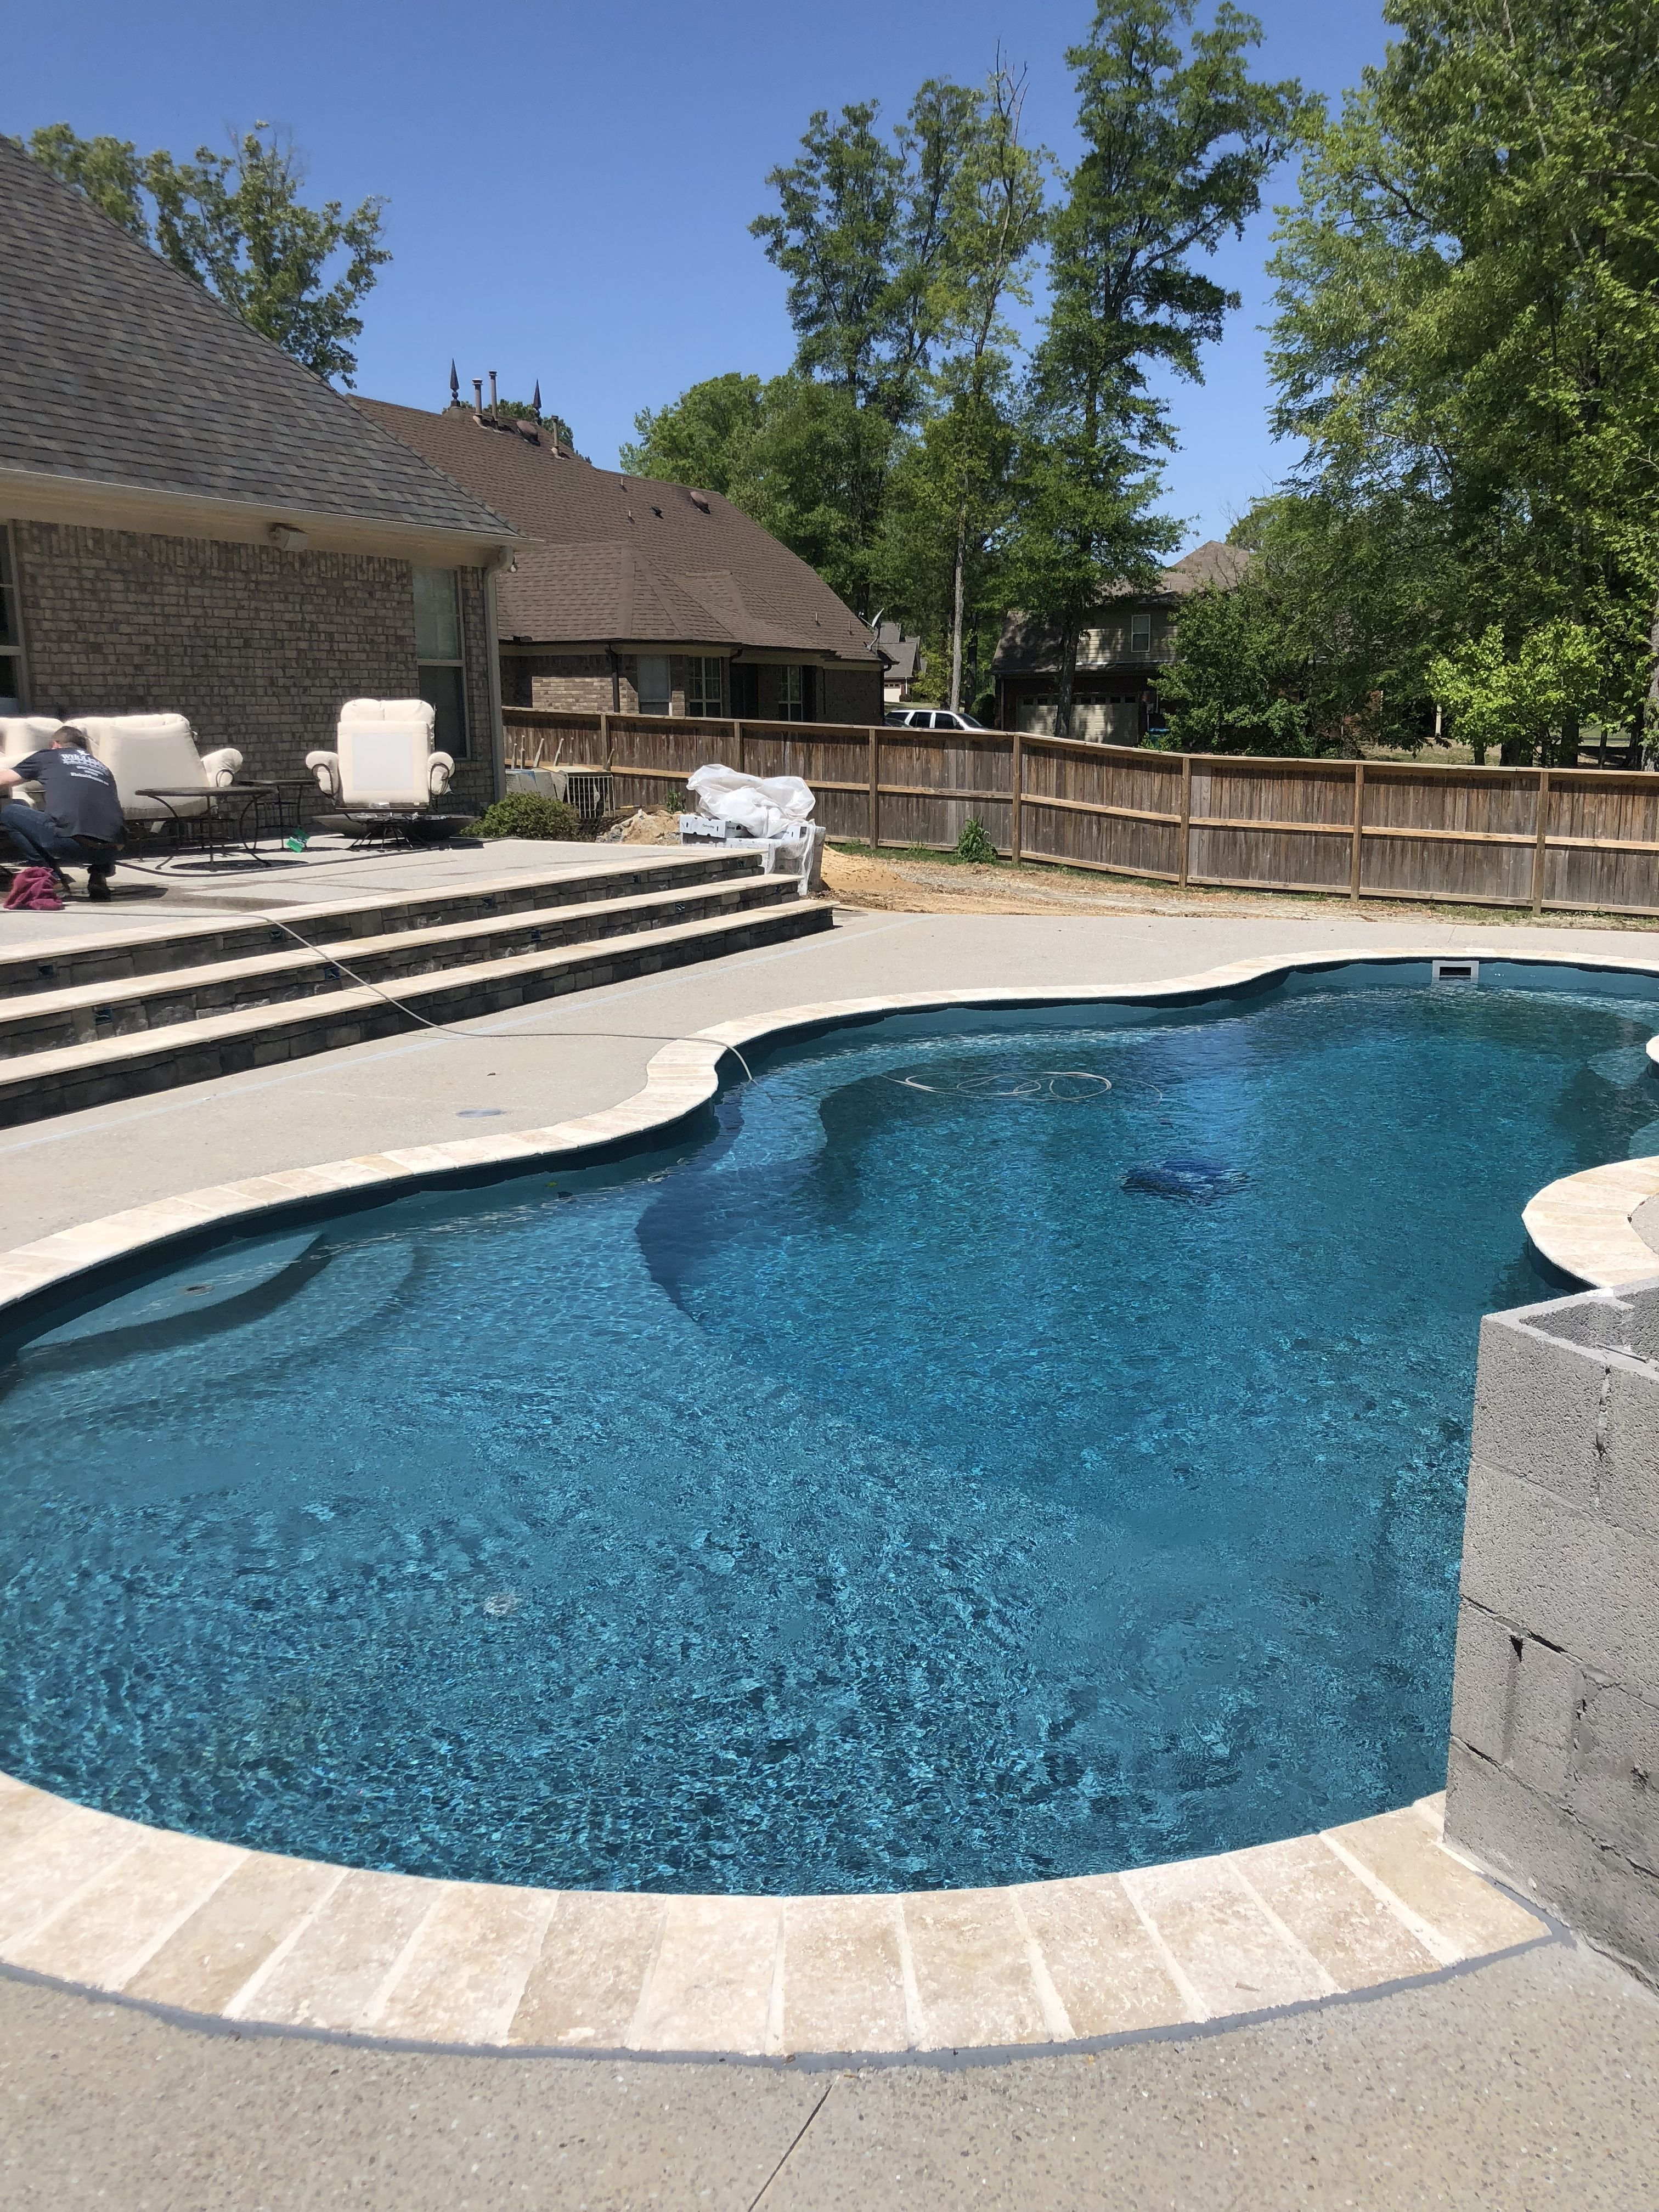 Outdoor Oasis, Trilogy Axiom Fiberglass pool, Stel in 30